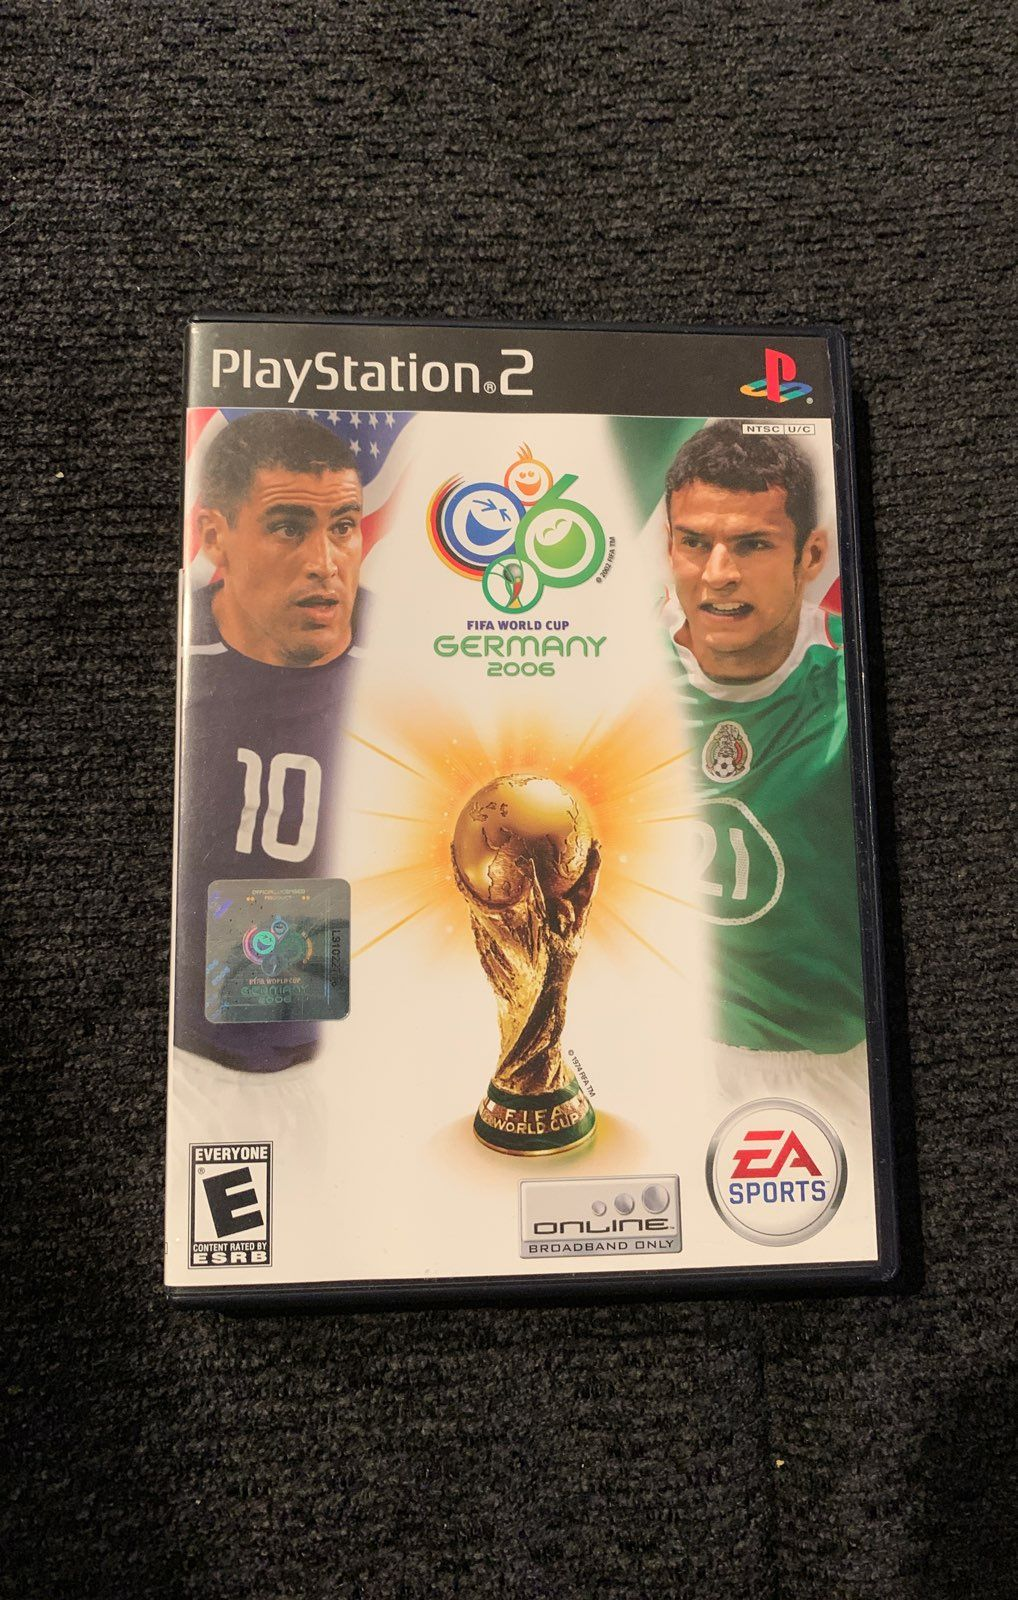 Fifa World Cup Germany 2006 By Ea Sports For Ps2 Game Is In Great Shape With The Original Box And No Scratches Or Defects World Cup Fifa World Cup Fifa